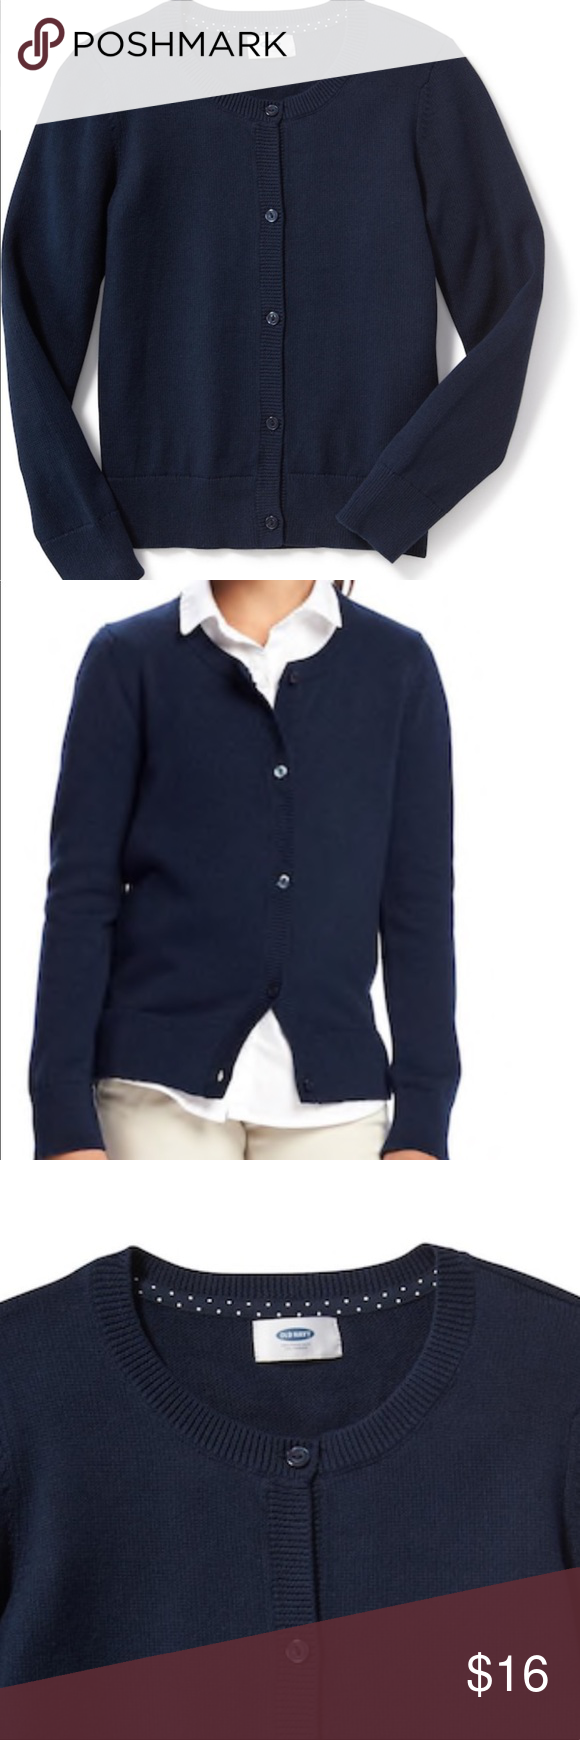 Girls old navy cardigan sweater | Navy uniforms, Rib knit and Navy